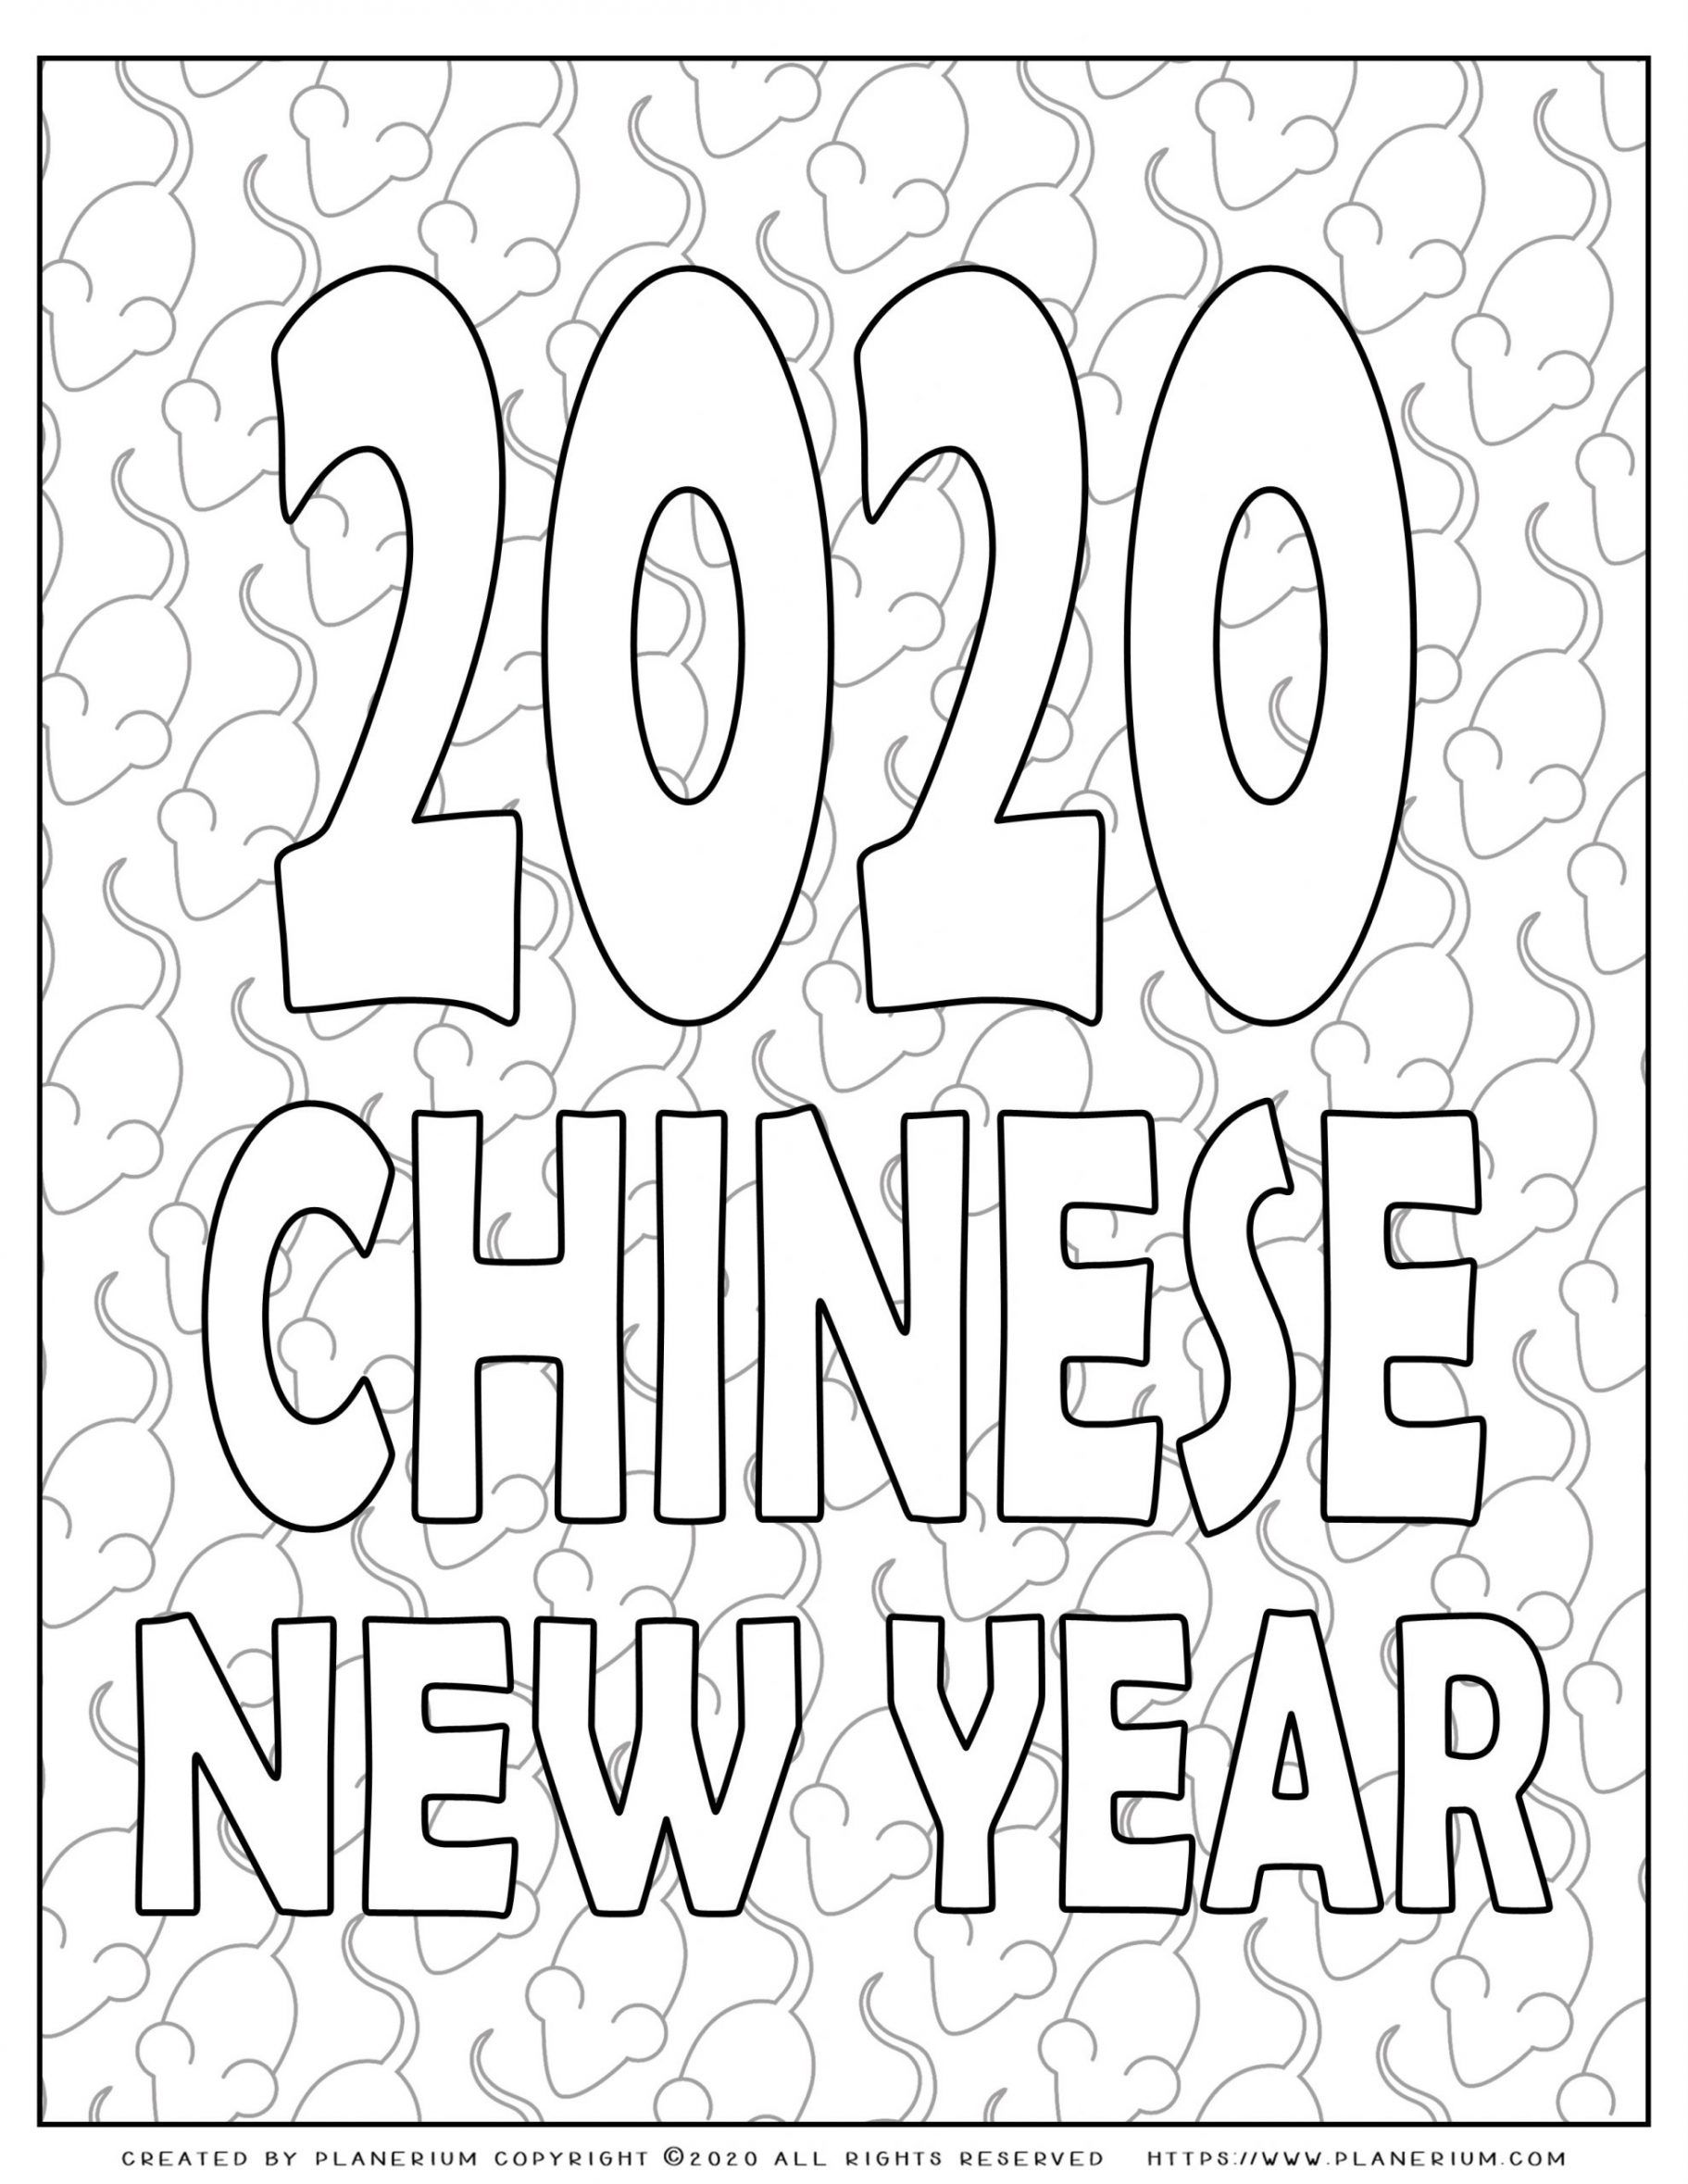 Lunar New Year Chinese Year of the Rat 2020 - Coloring Page - Poster | Planerium